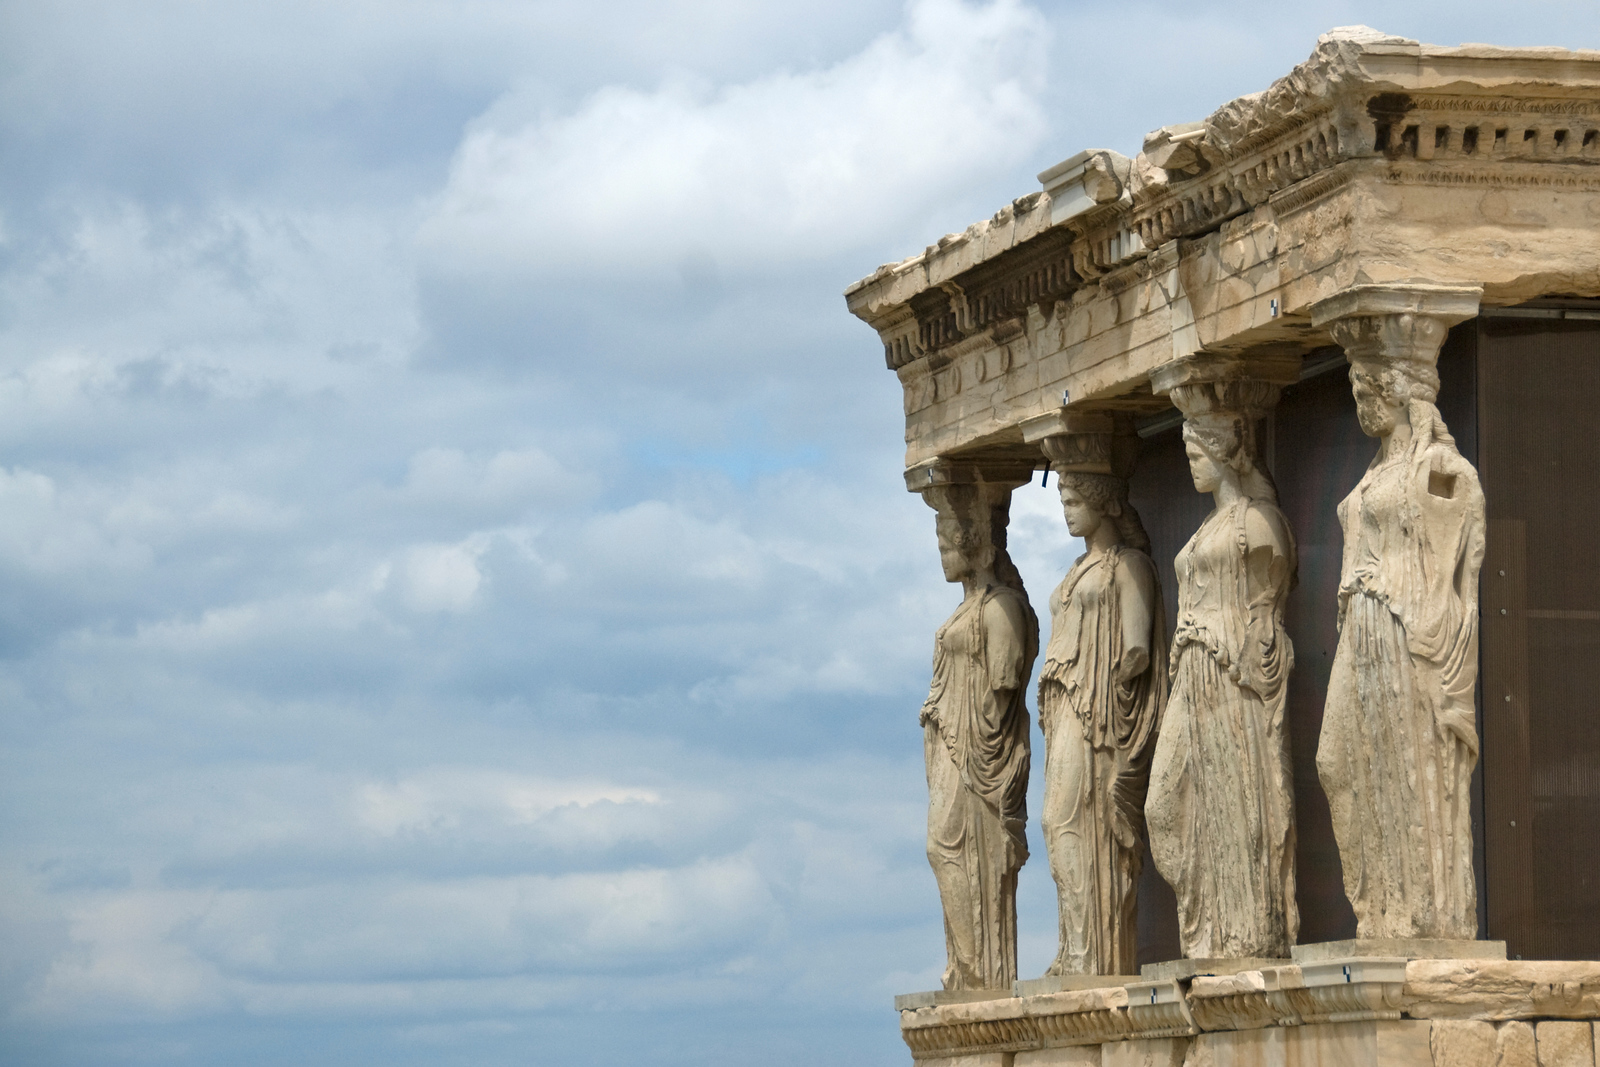 Acropolis, Athens - UNESCO World Heritage Site